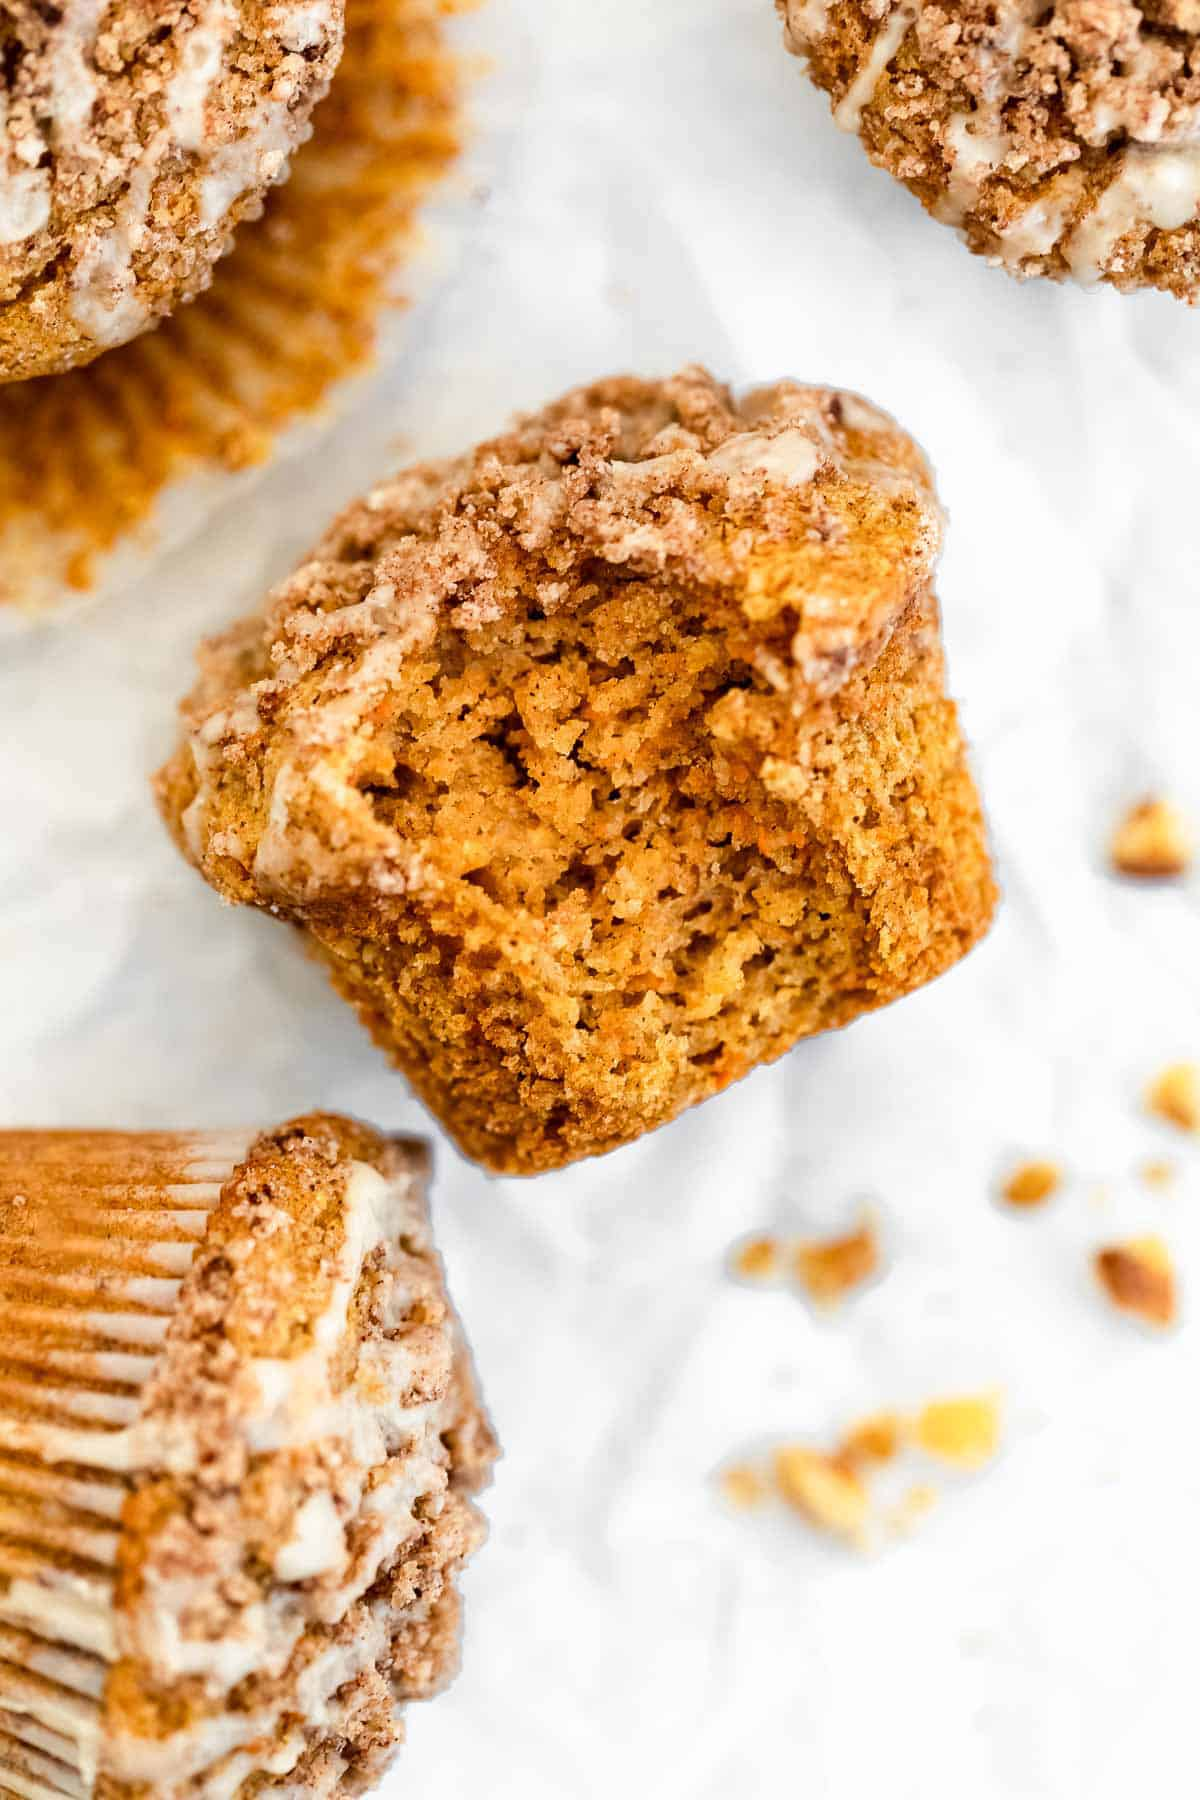 gluten free carrot muffins with a bite taken out